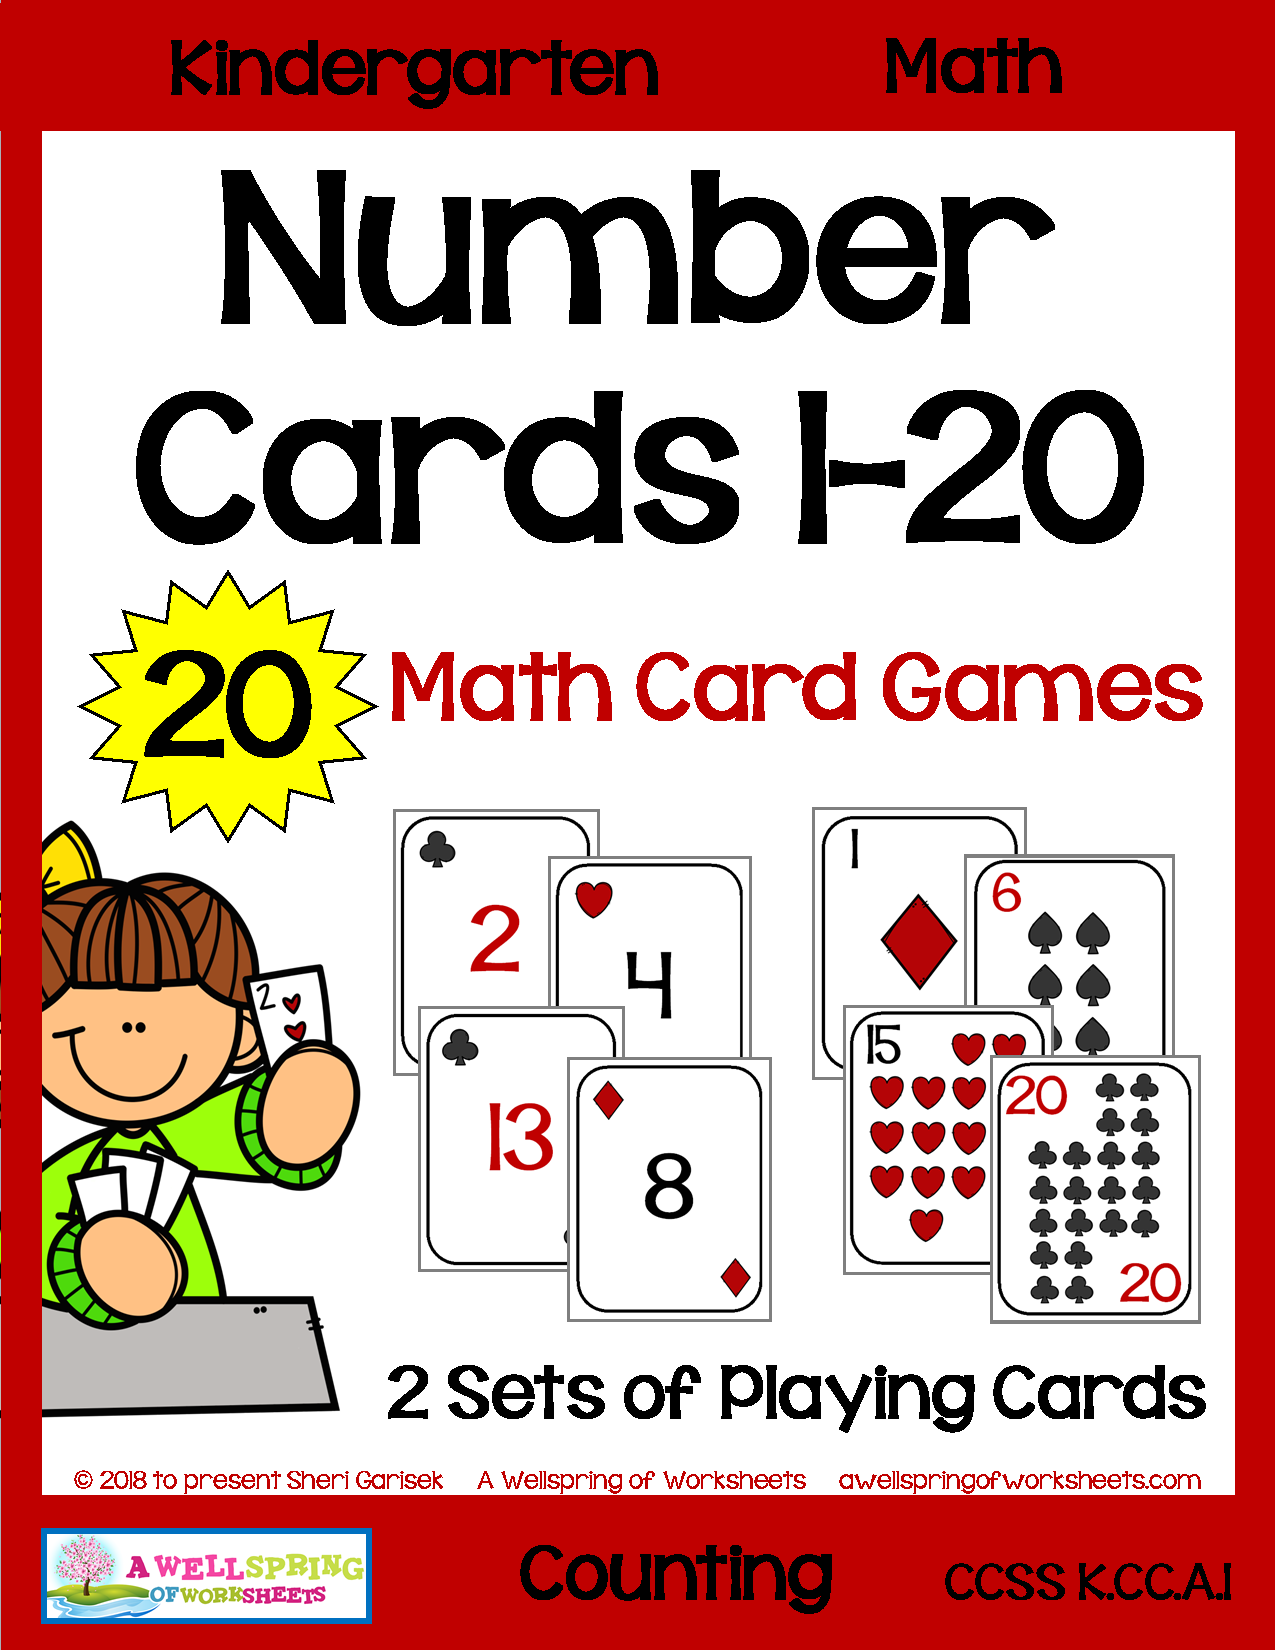 Number Cards 1 20 For Math Card Games